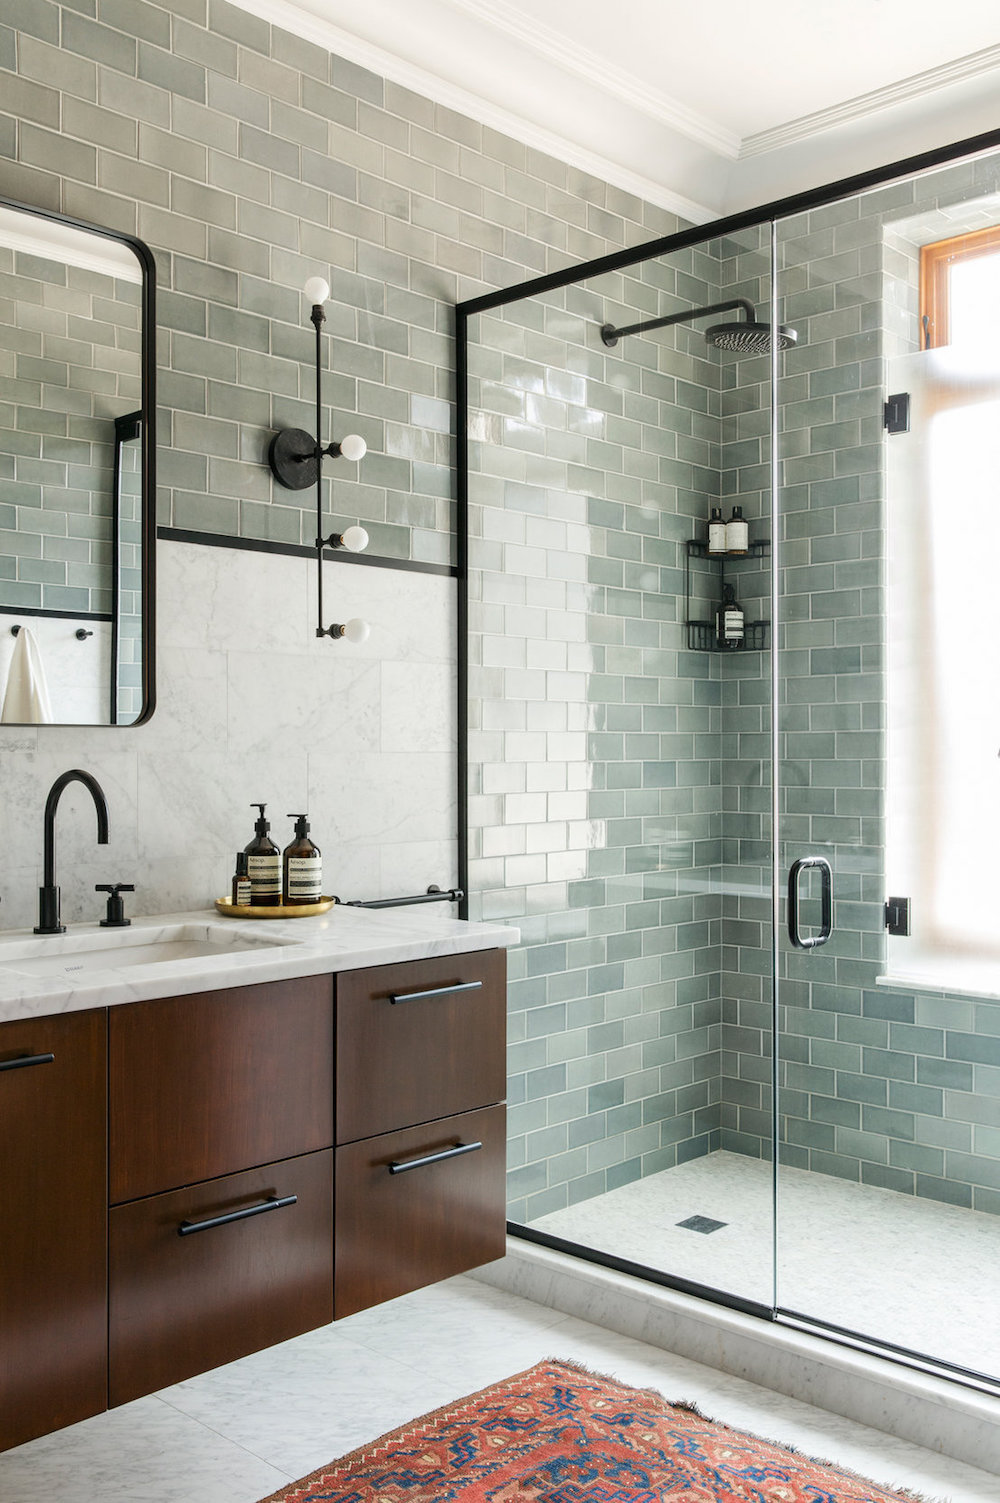 Bathroom renovation tips by First Sense || Marble tiles combined with glazed brick tiles